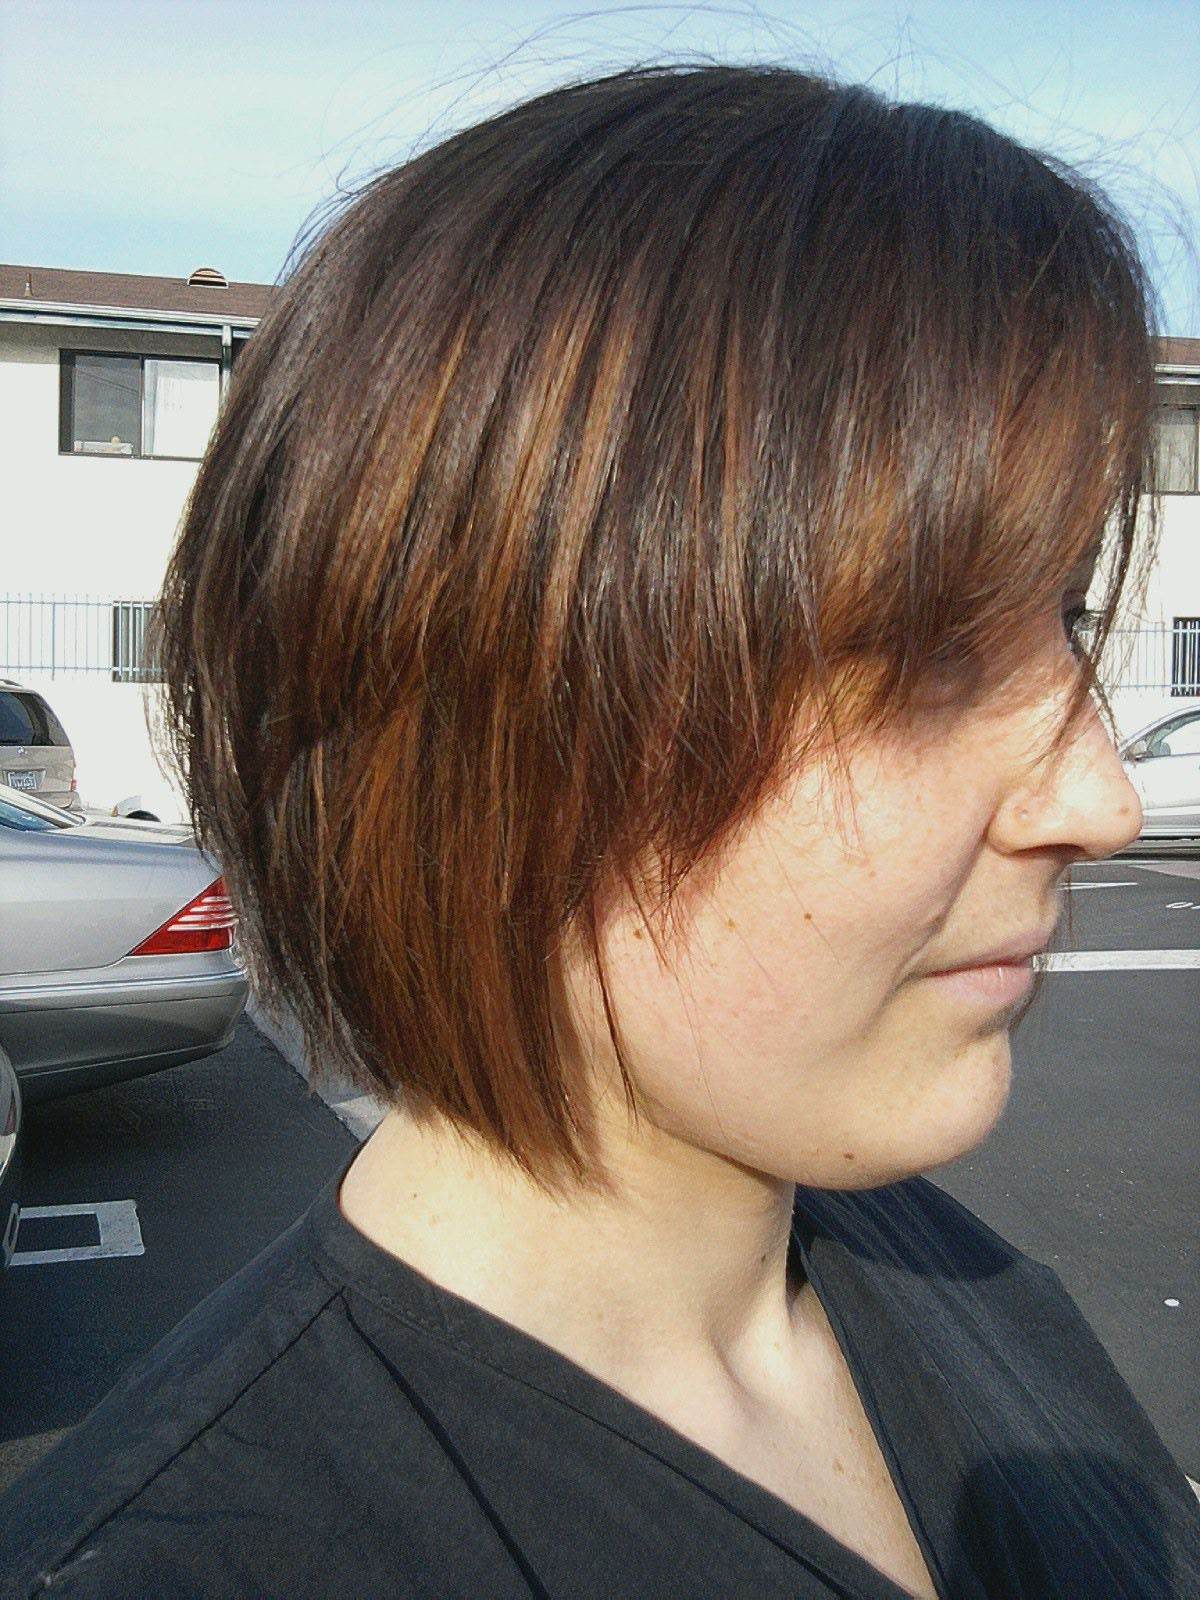 My Haircut Jagged Bob with copper golden brown color